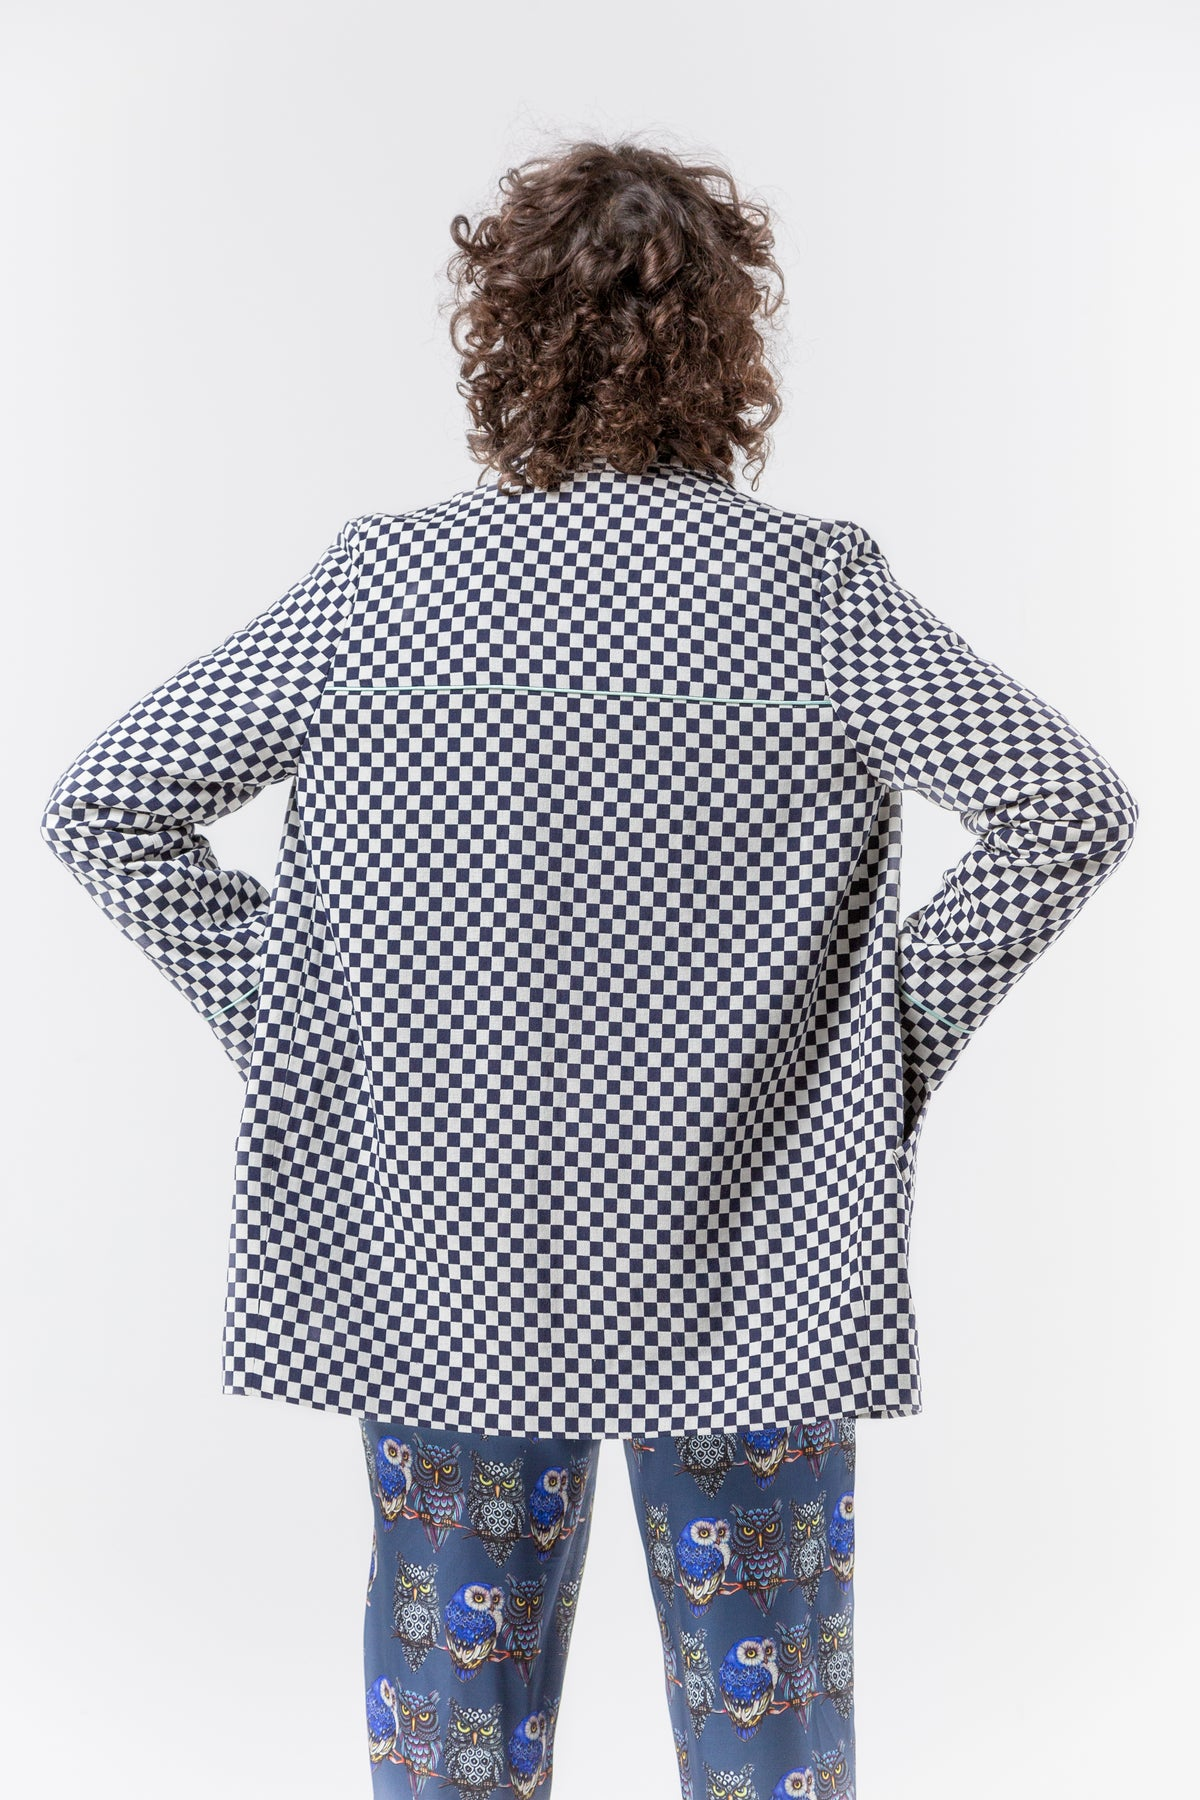 Tichy coat in chequered jacquard